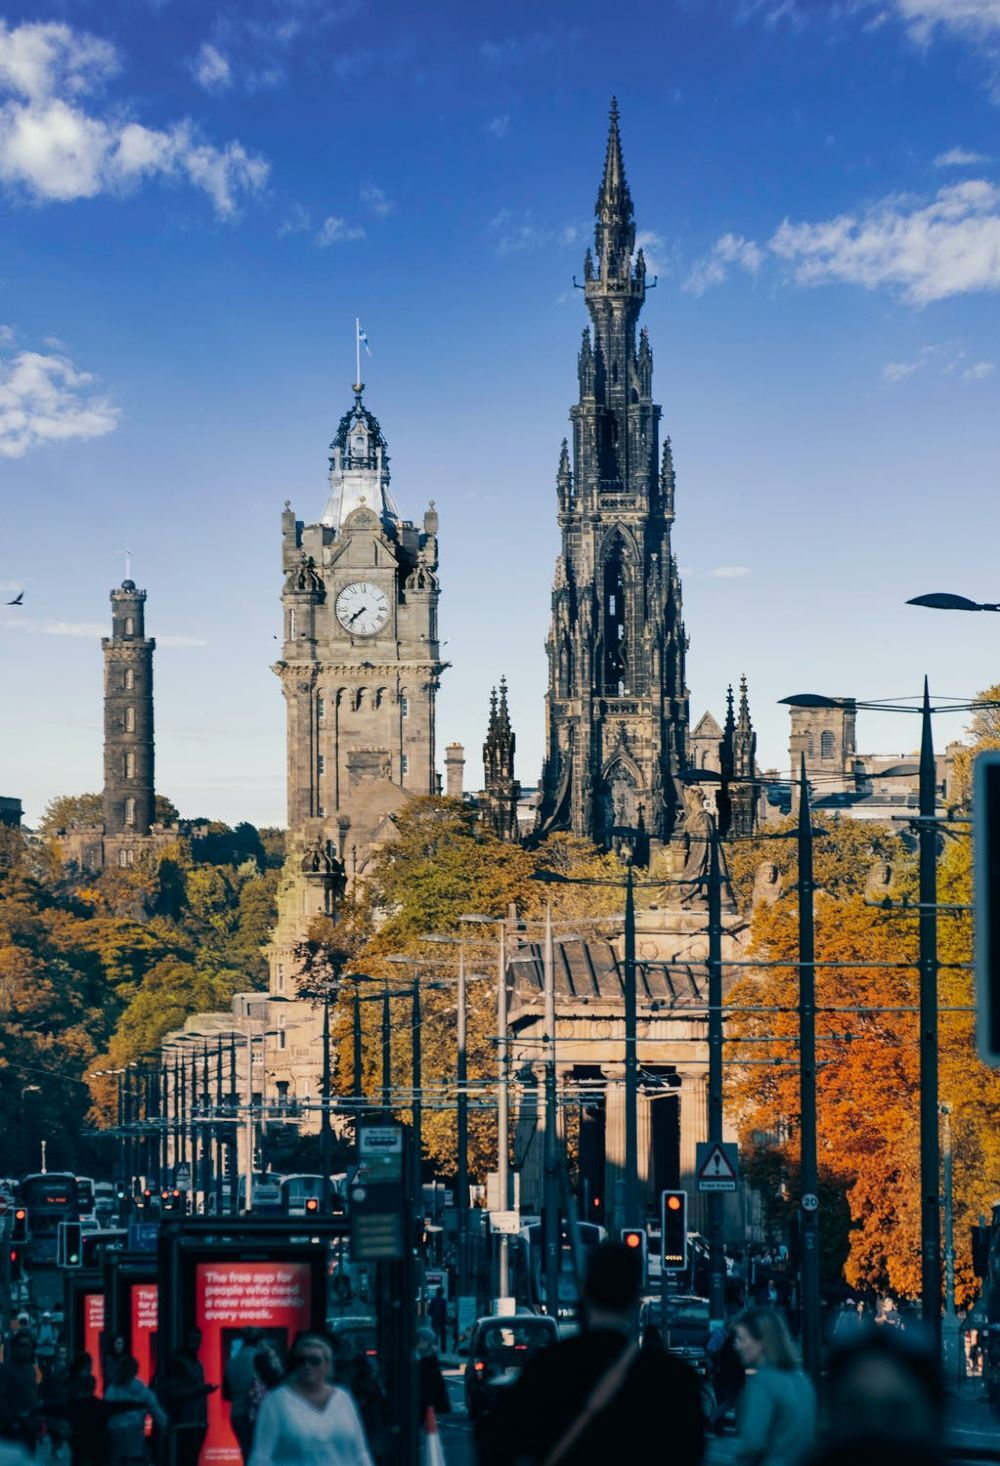 Take a Train to Enjoy the Mysterious and Beautiful Edinburgh